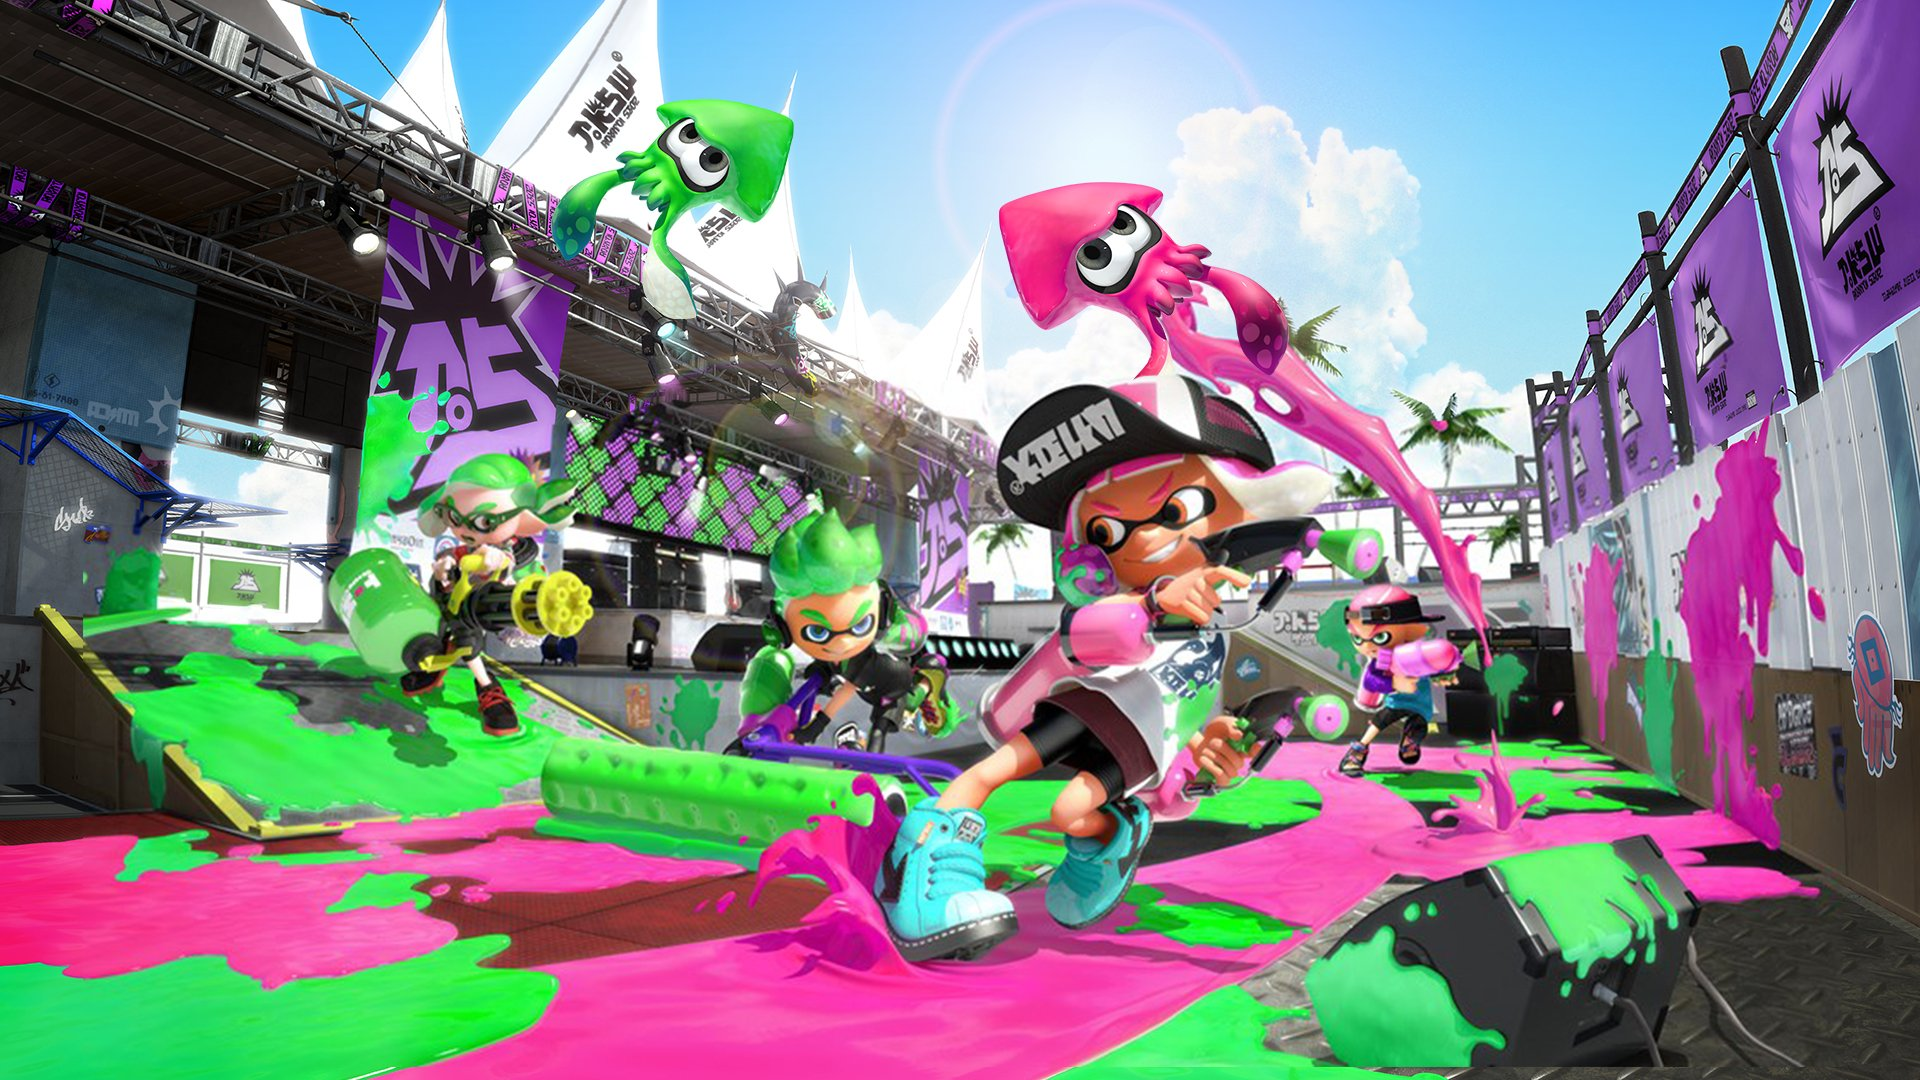 Splatoon 2 has helped bring a younger crowd to the Switch